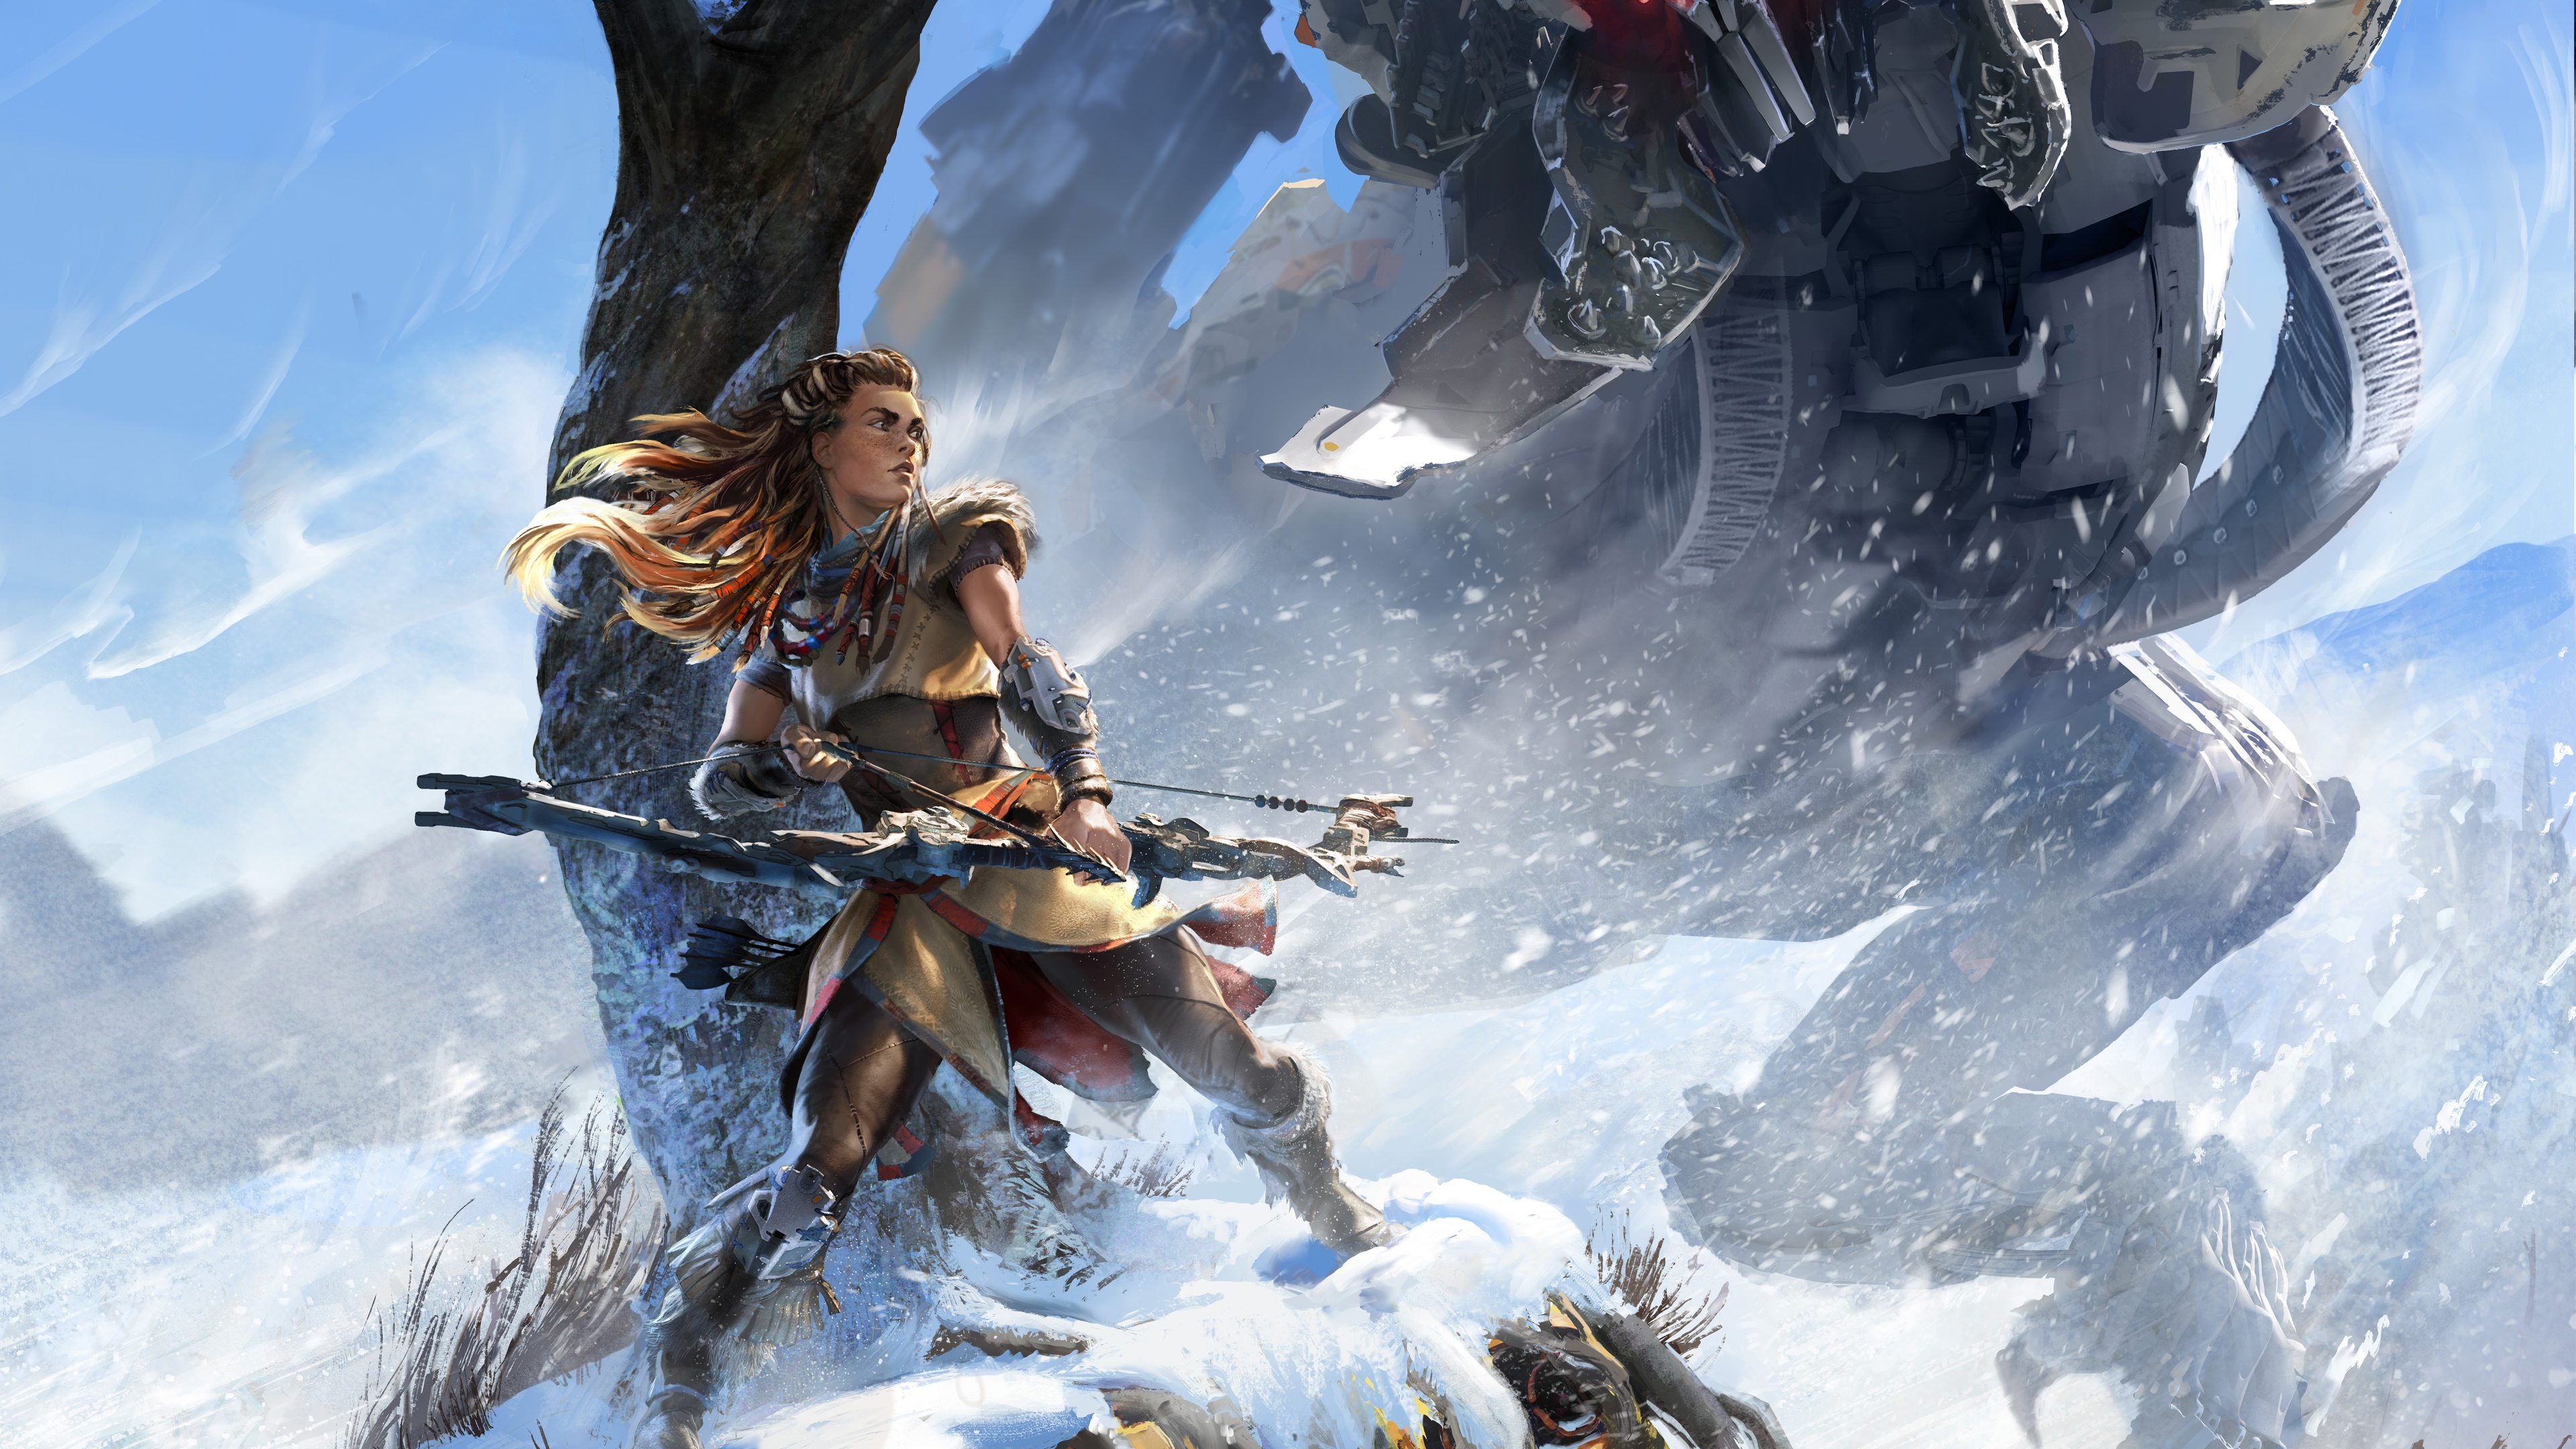 4K Horizon Zero Dawn  HD Games  4k Wallpapers  Images  Backgrounds     4K Horizon Zero Dawn